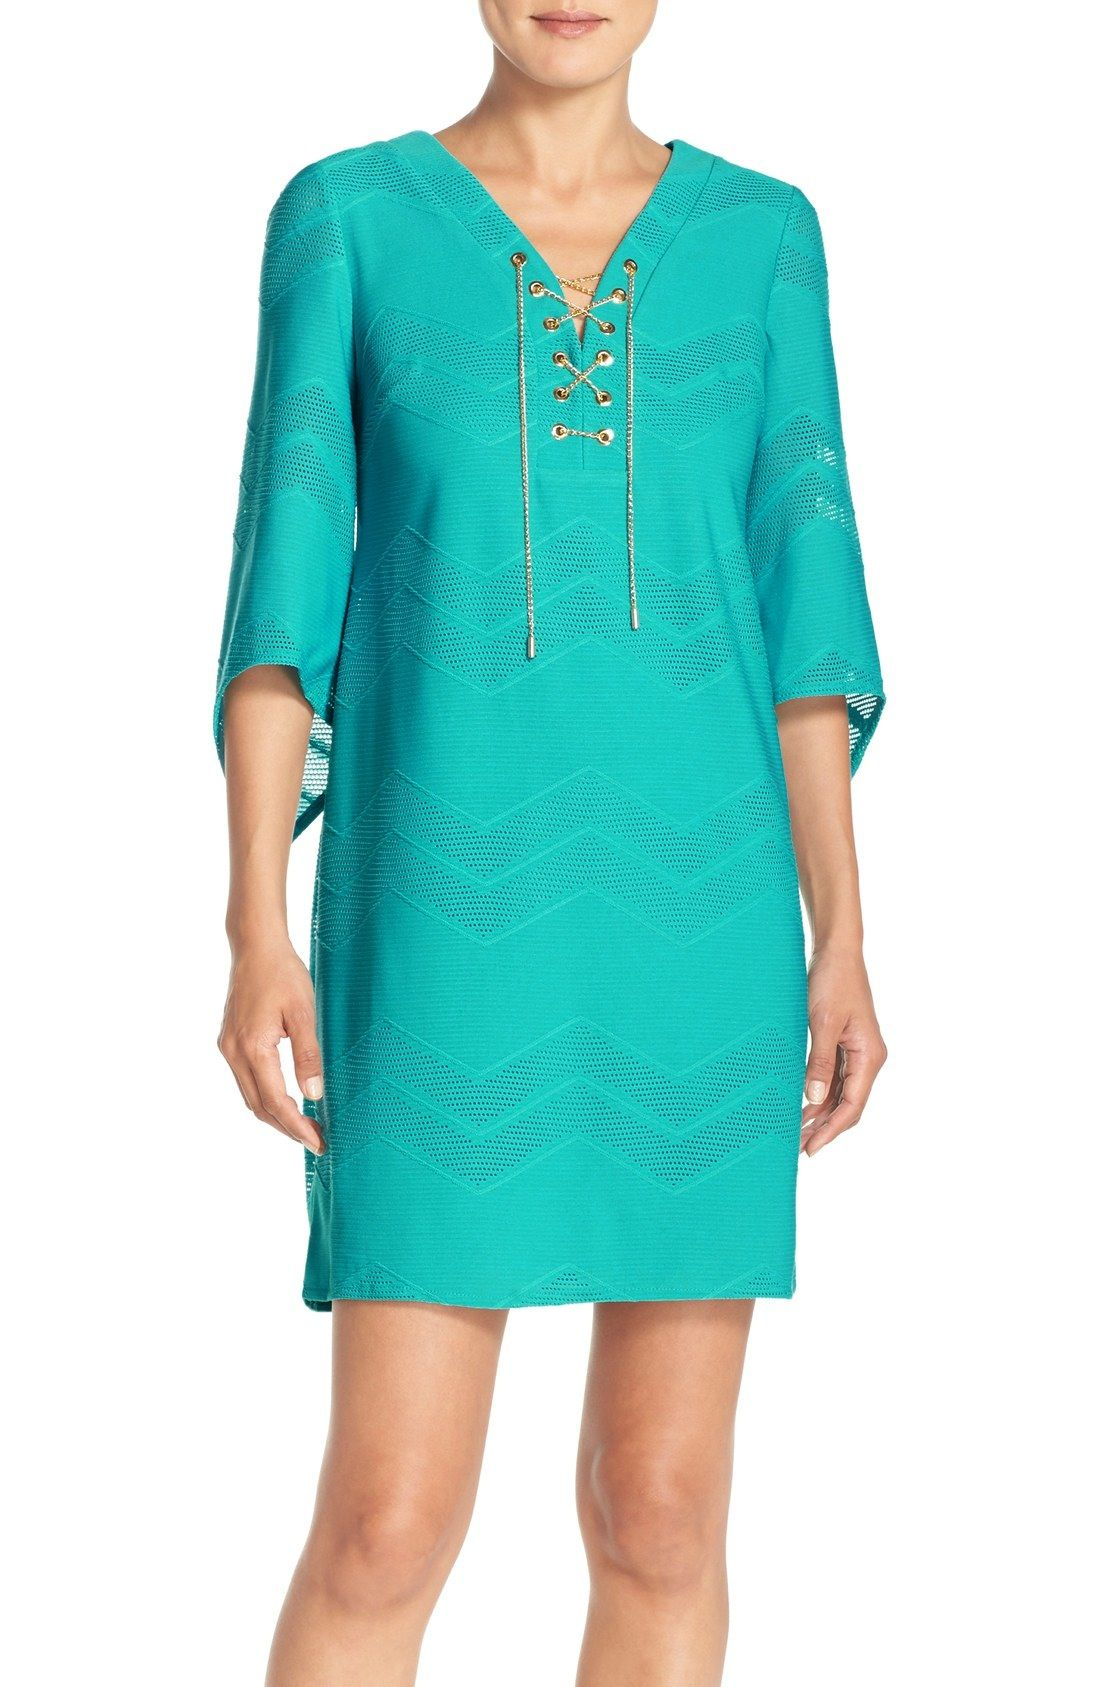 Nordstrom dresses wedding guest  London Times LaceUp Neck Mesh Shift Dress available at Nordstrom